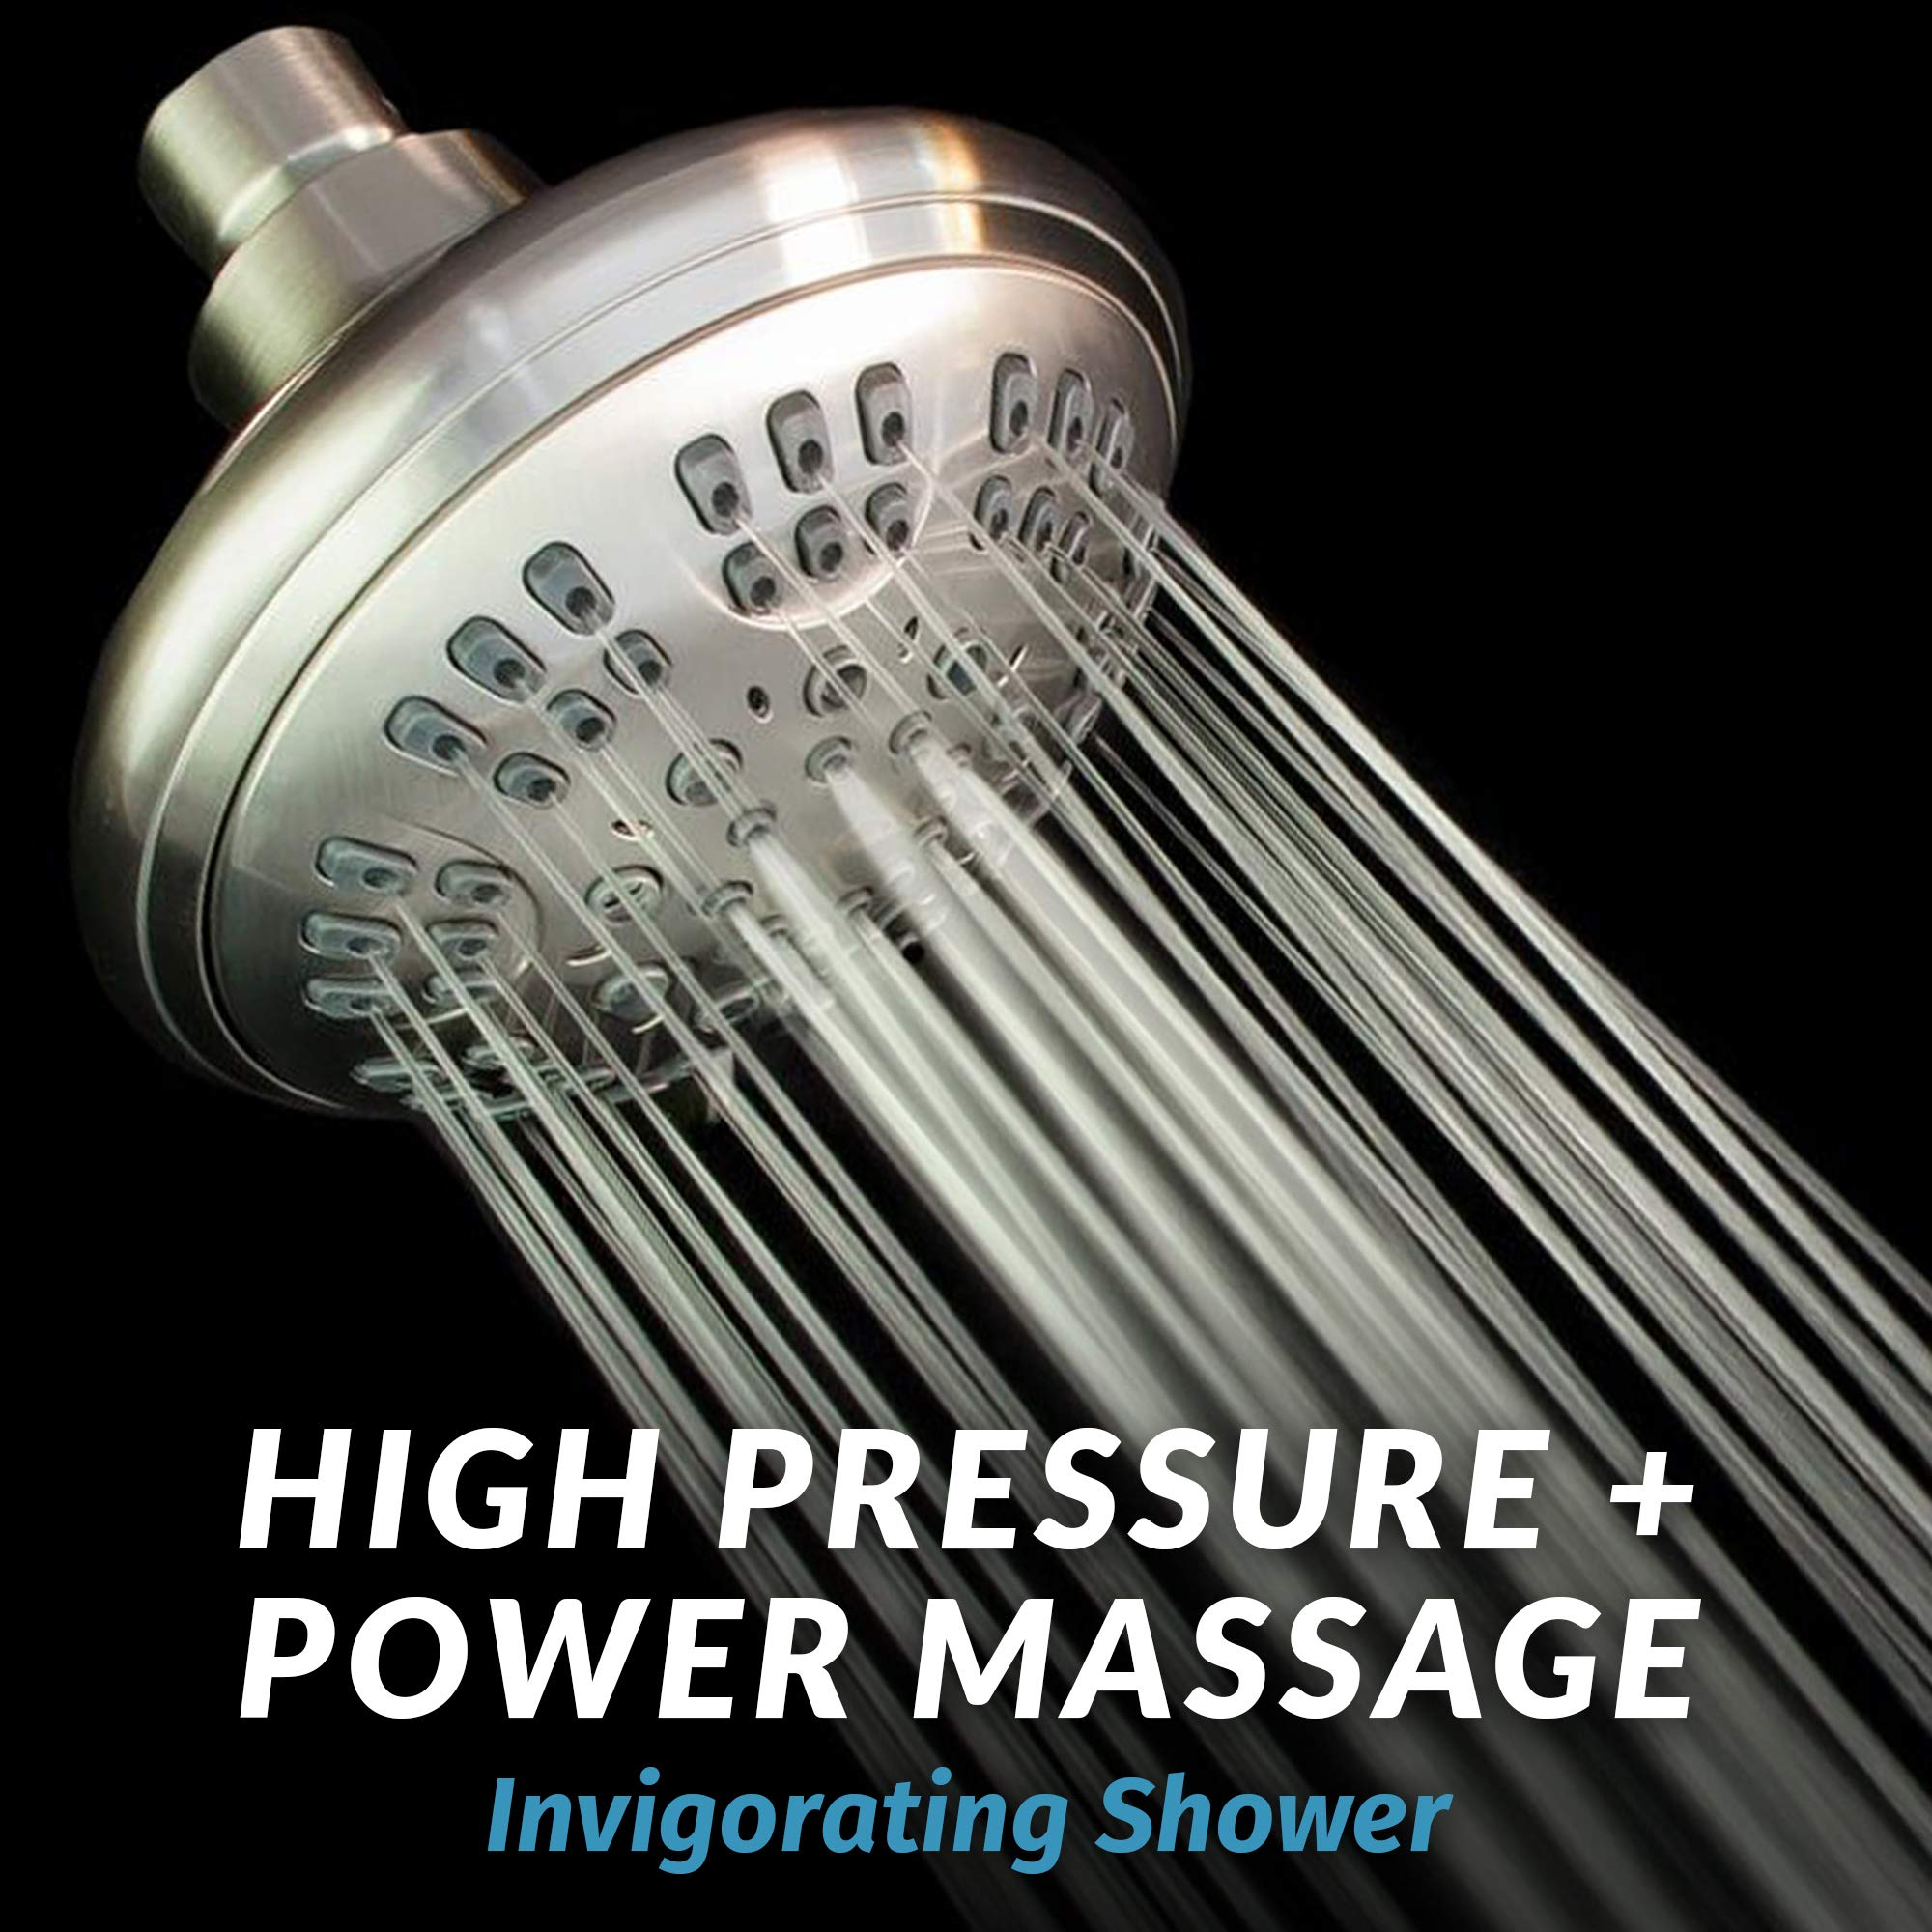 ShowerMaxx | Luxury Fixed Shower Head in Brushed Nickel Finish | Self Cleaning Nozzle Heads with 6-Settings Control | High Pressure Powerful Jets with Massage Spray | Wall Mount Adjustable Showerhead by ShowerMaxx (Image #8)